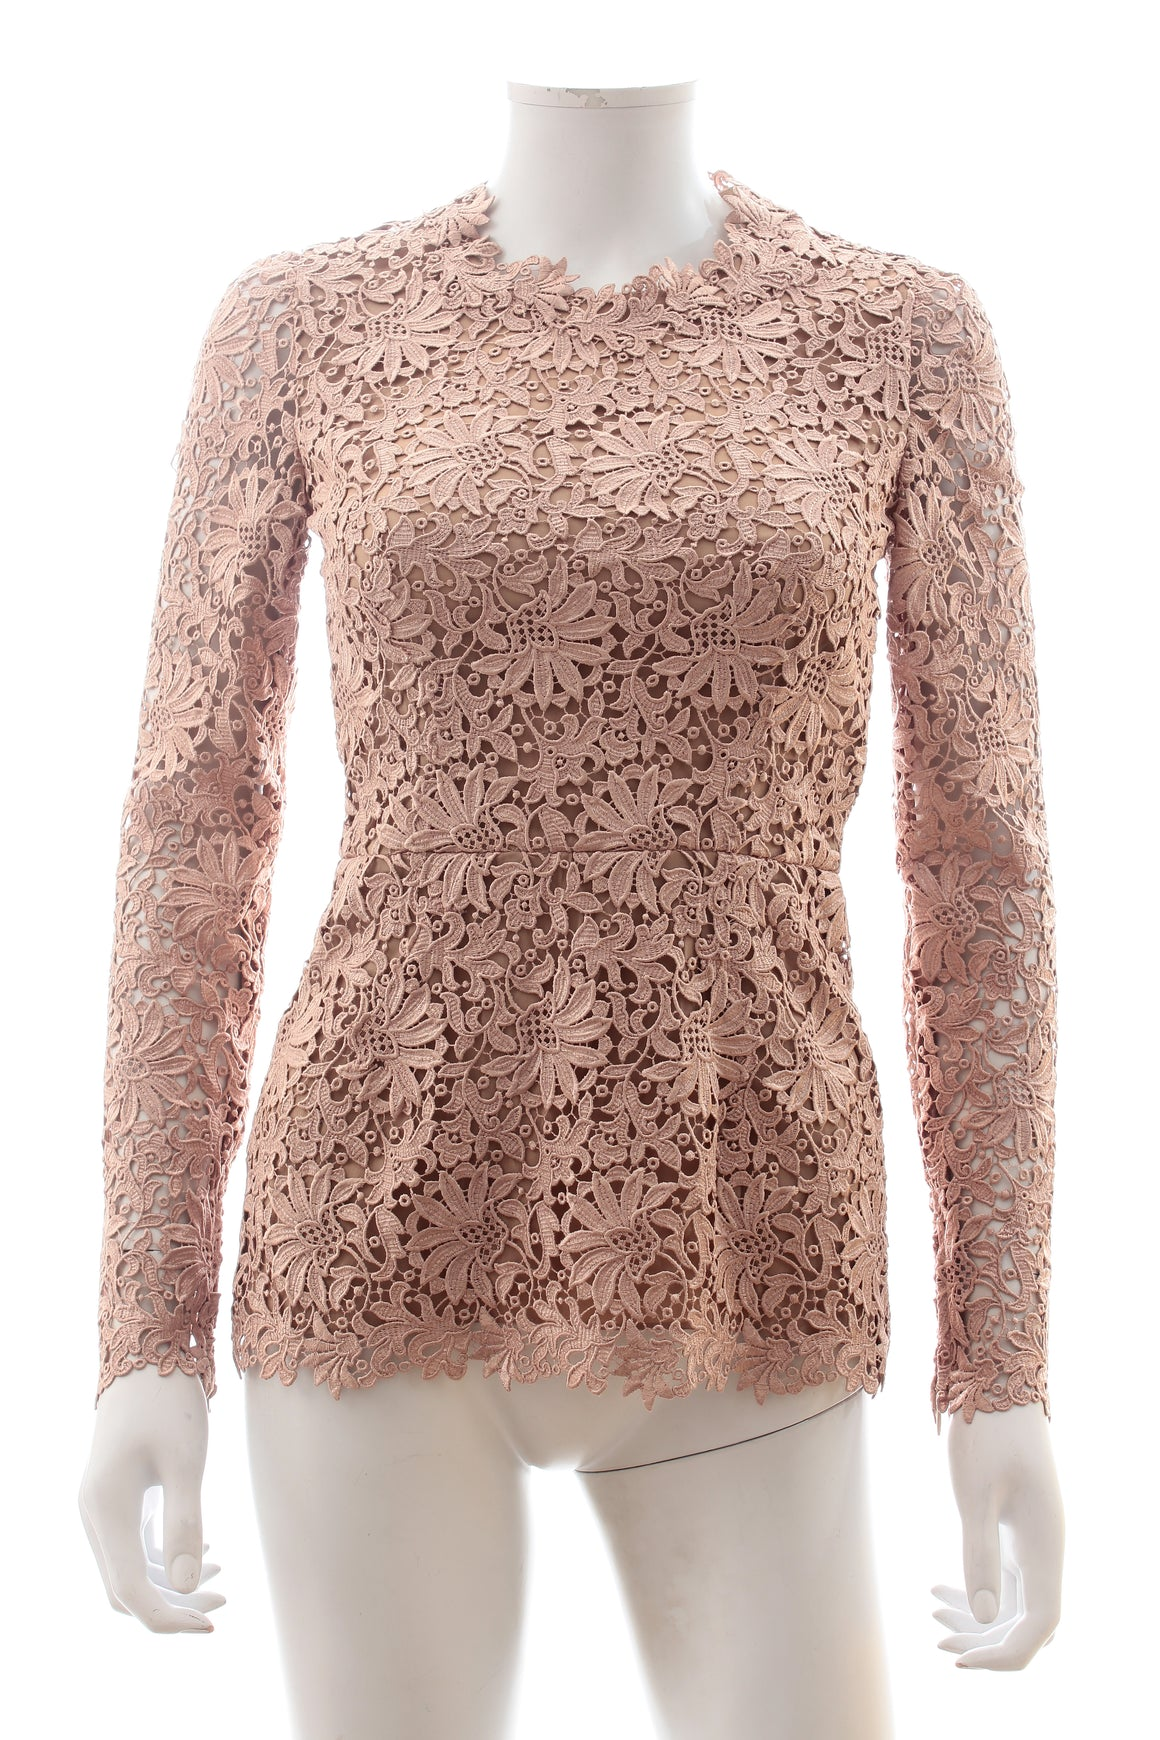 Stella McCartney Lace Blouse